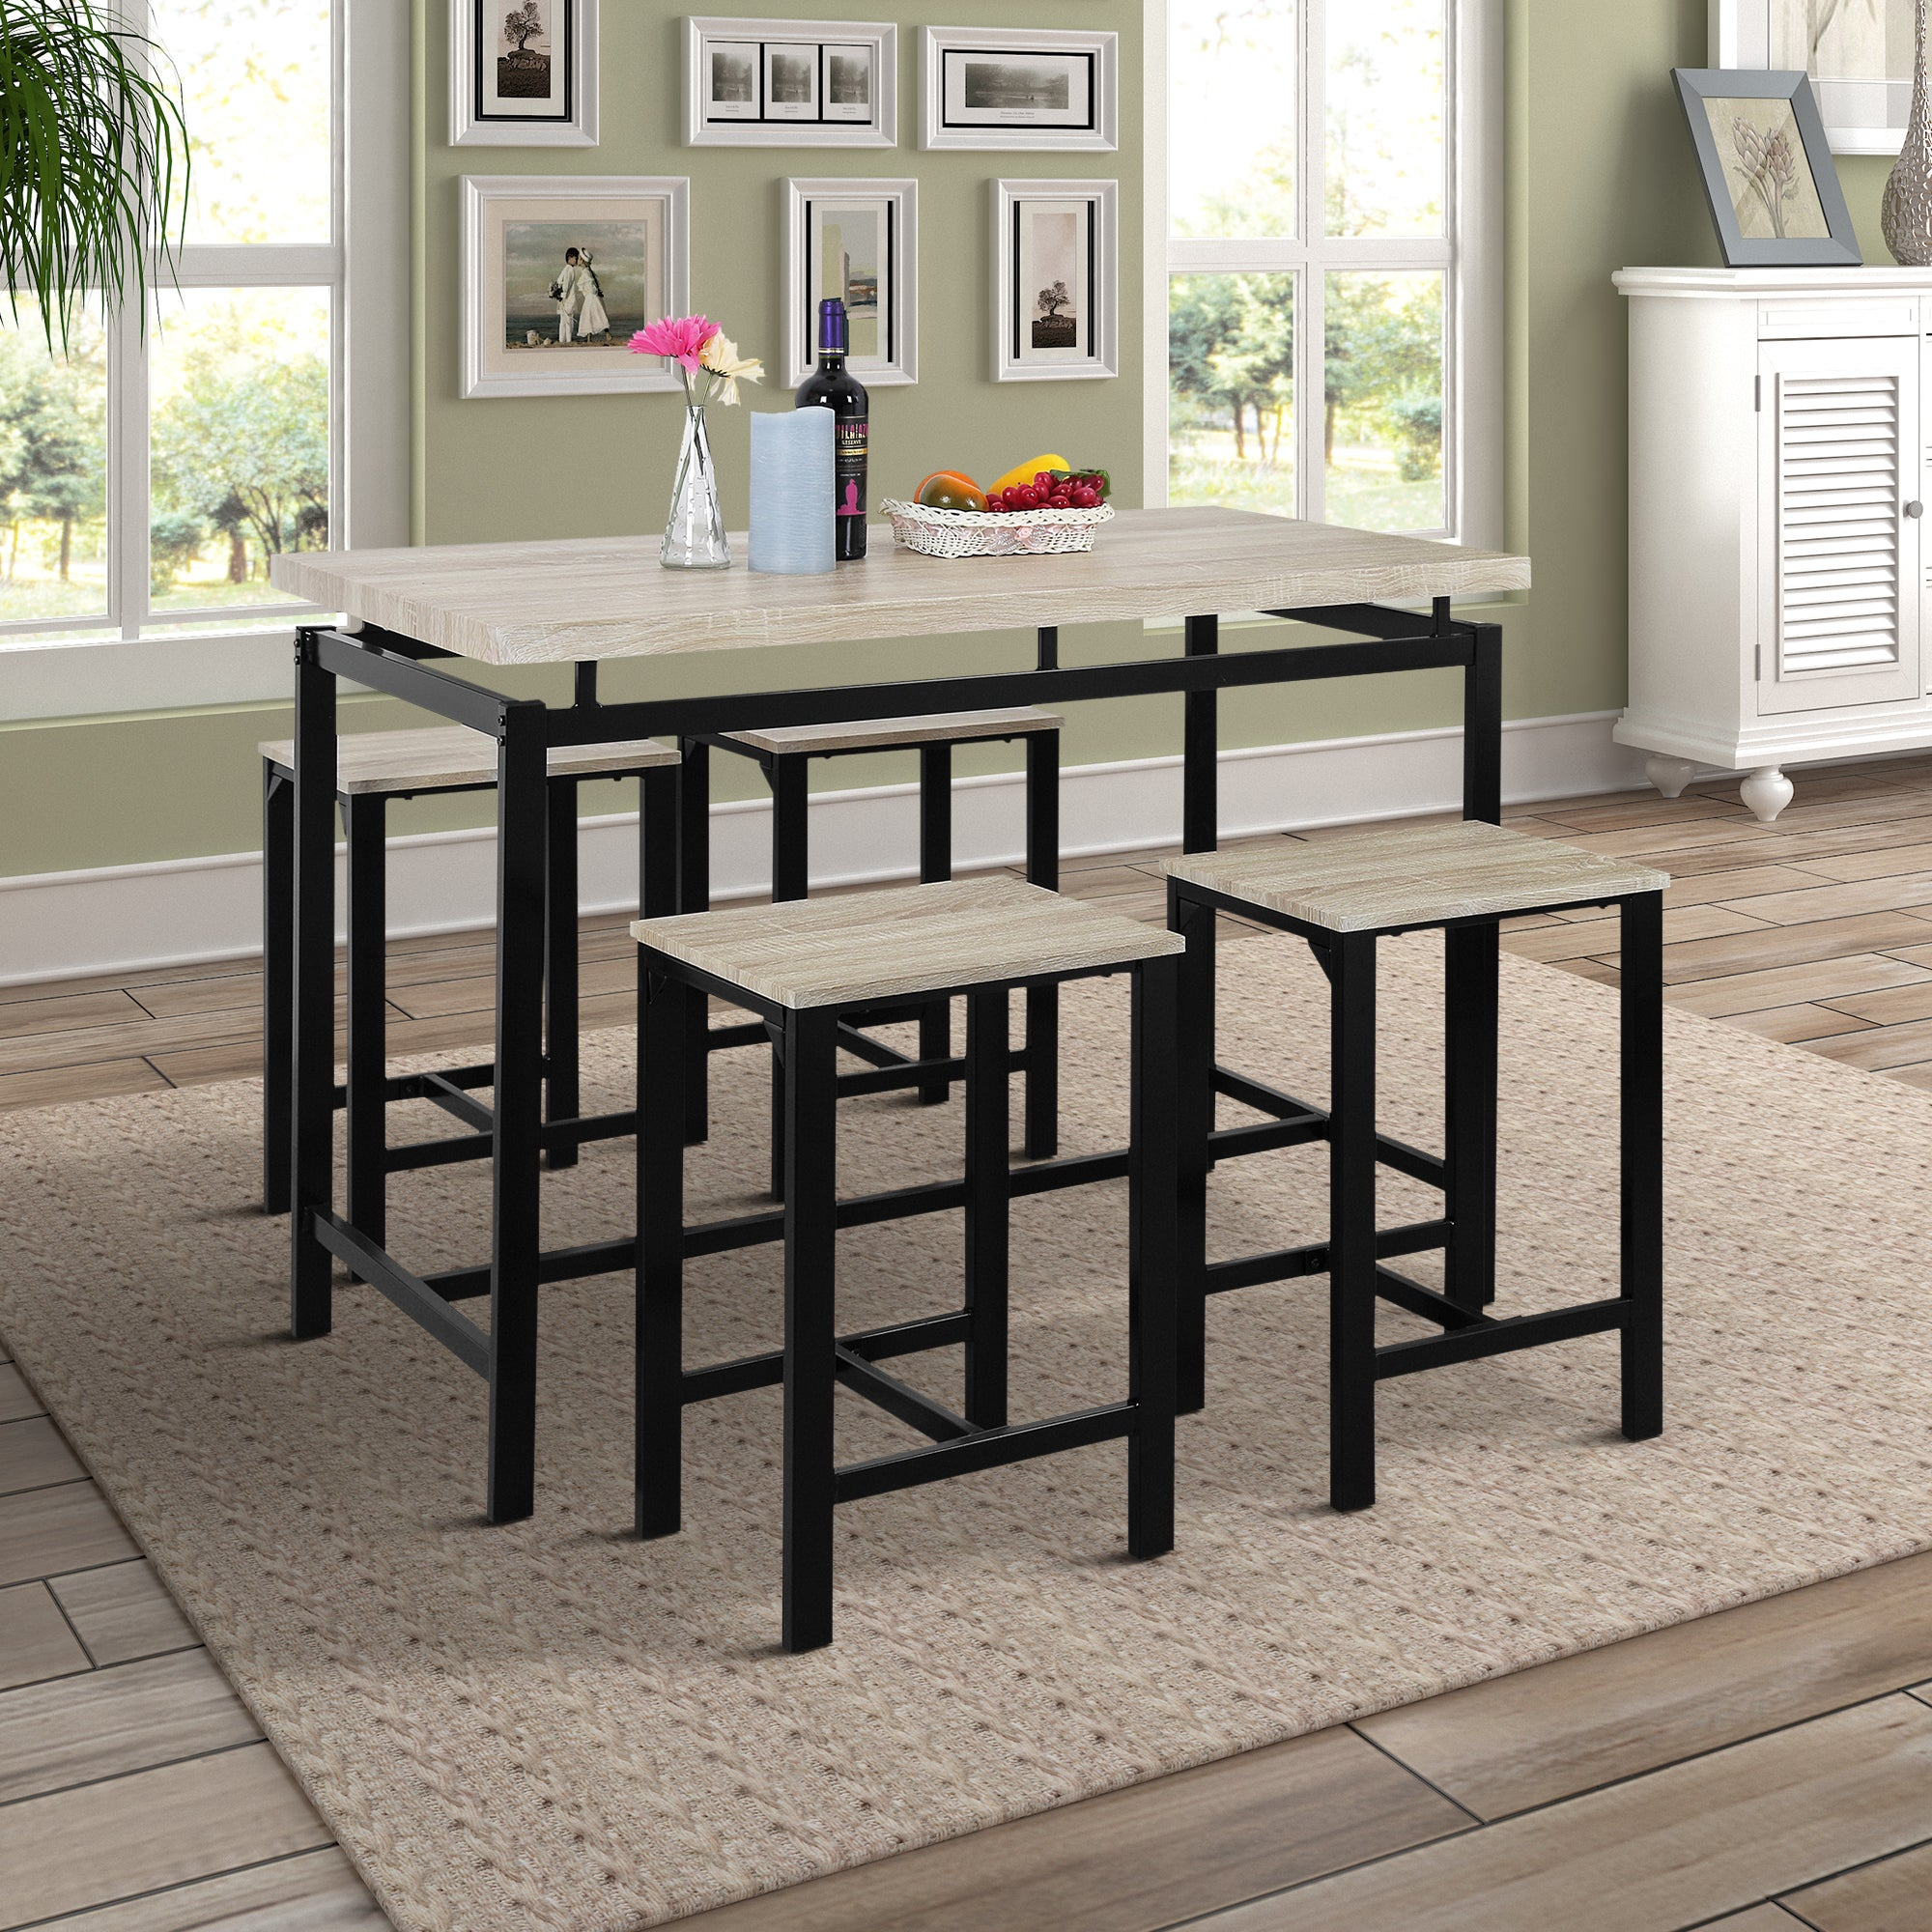 CAMANDE 5-Piece Counter Height Table Set/Dining Table with 4 Chairs